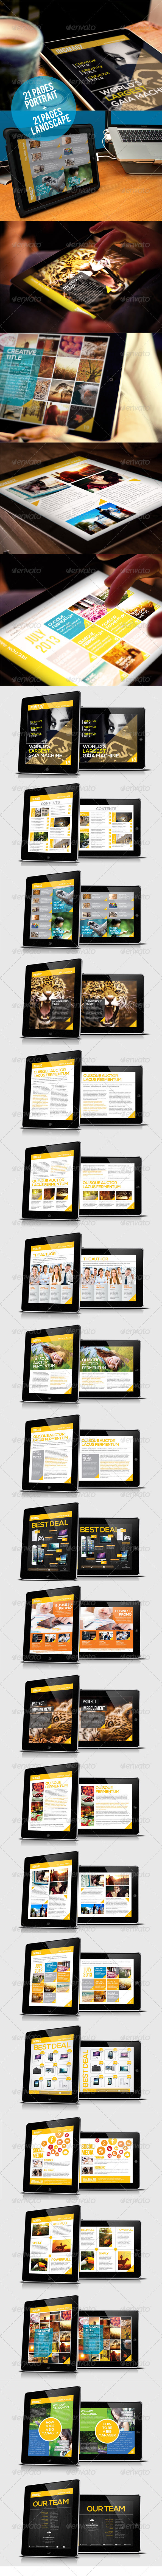 Ingmagz Tablet Magazine Template - Digital Magazines ePublishing